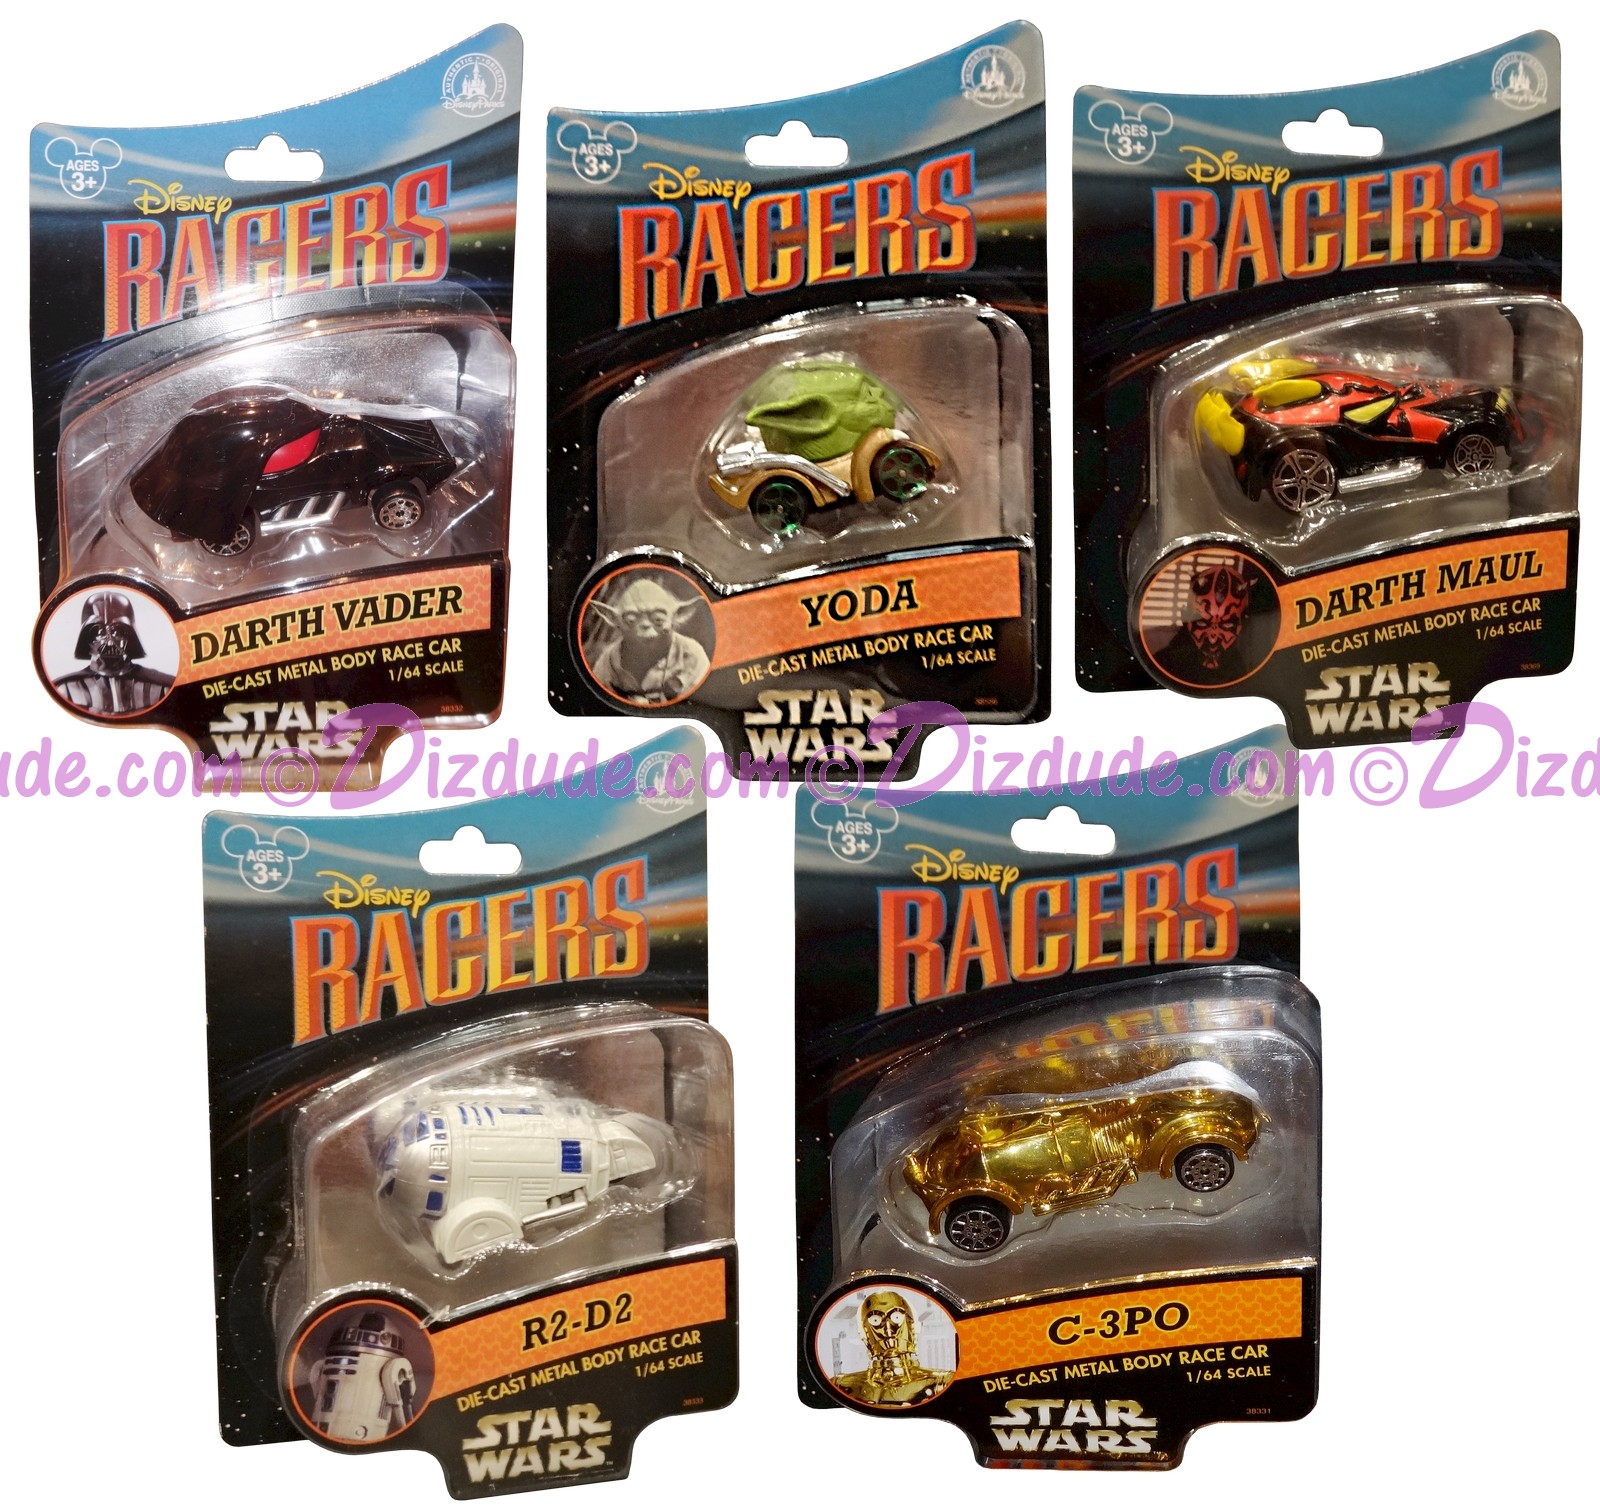 Star Tours Disney Racers Set of 5 with Darth Vader • Darth Maul • Yoda •  C-3PO and R2-D2 - Star Wars Weekends 2014